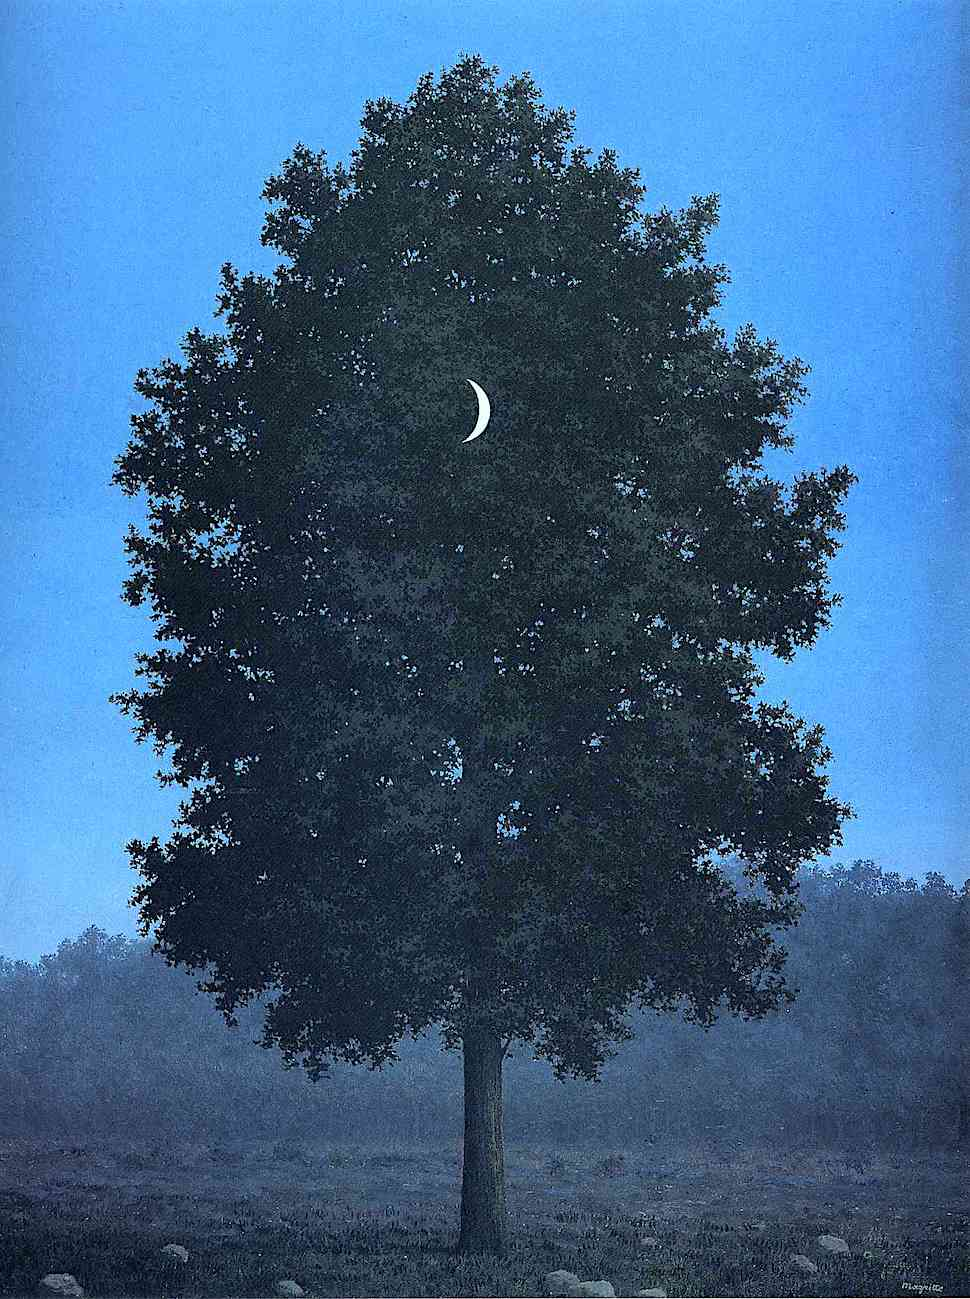 a Rene Magritte painting of a tree with moon